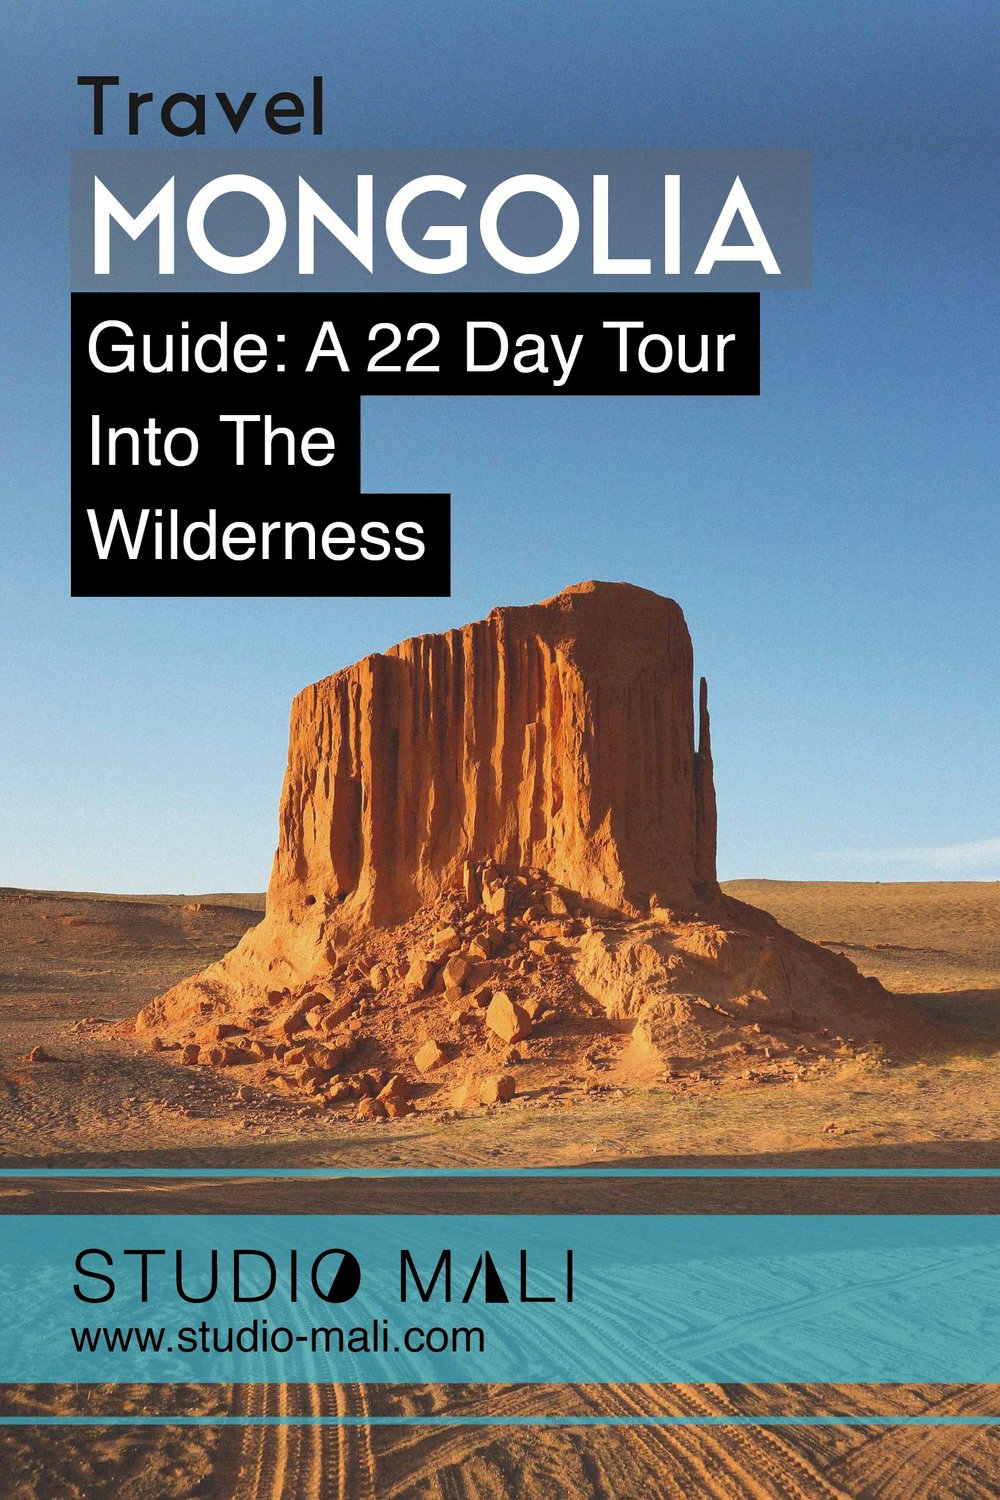 Mongolia Guide - A 22 Day Tour into the Wilderness, by Studio Mali